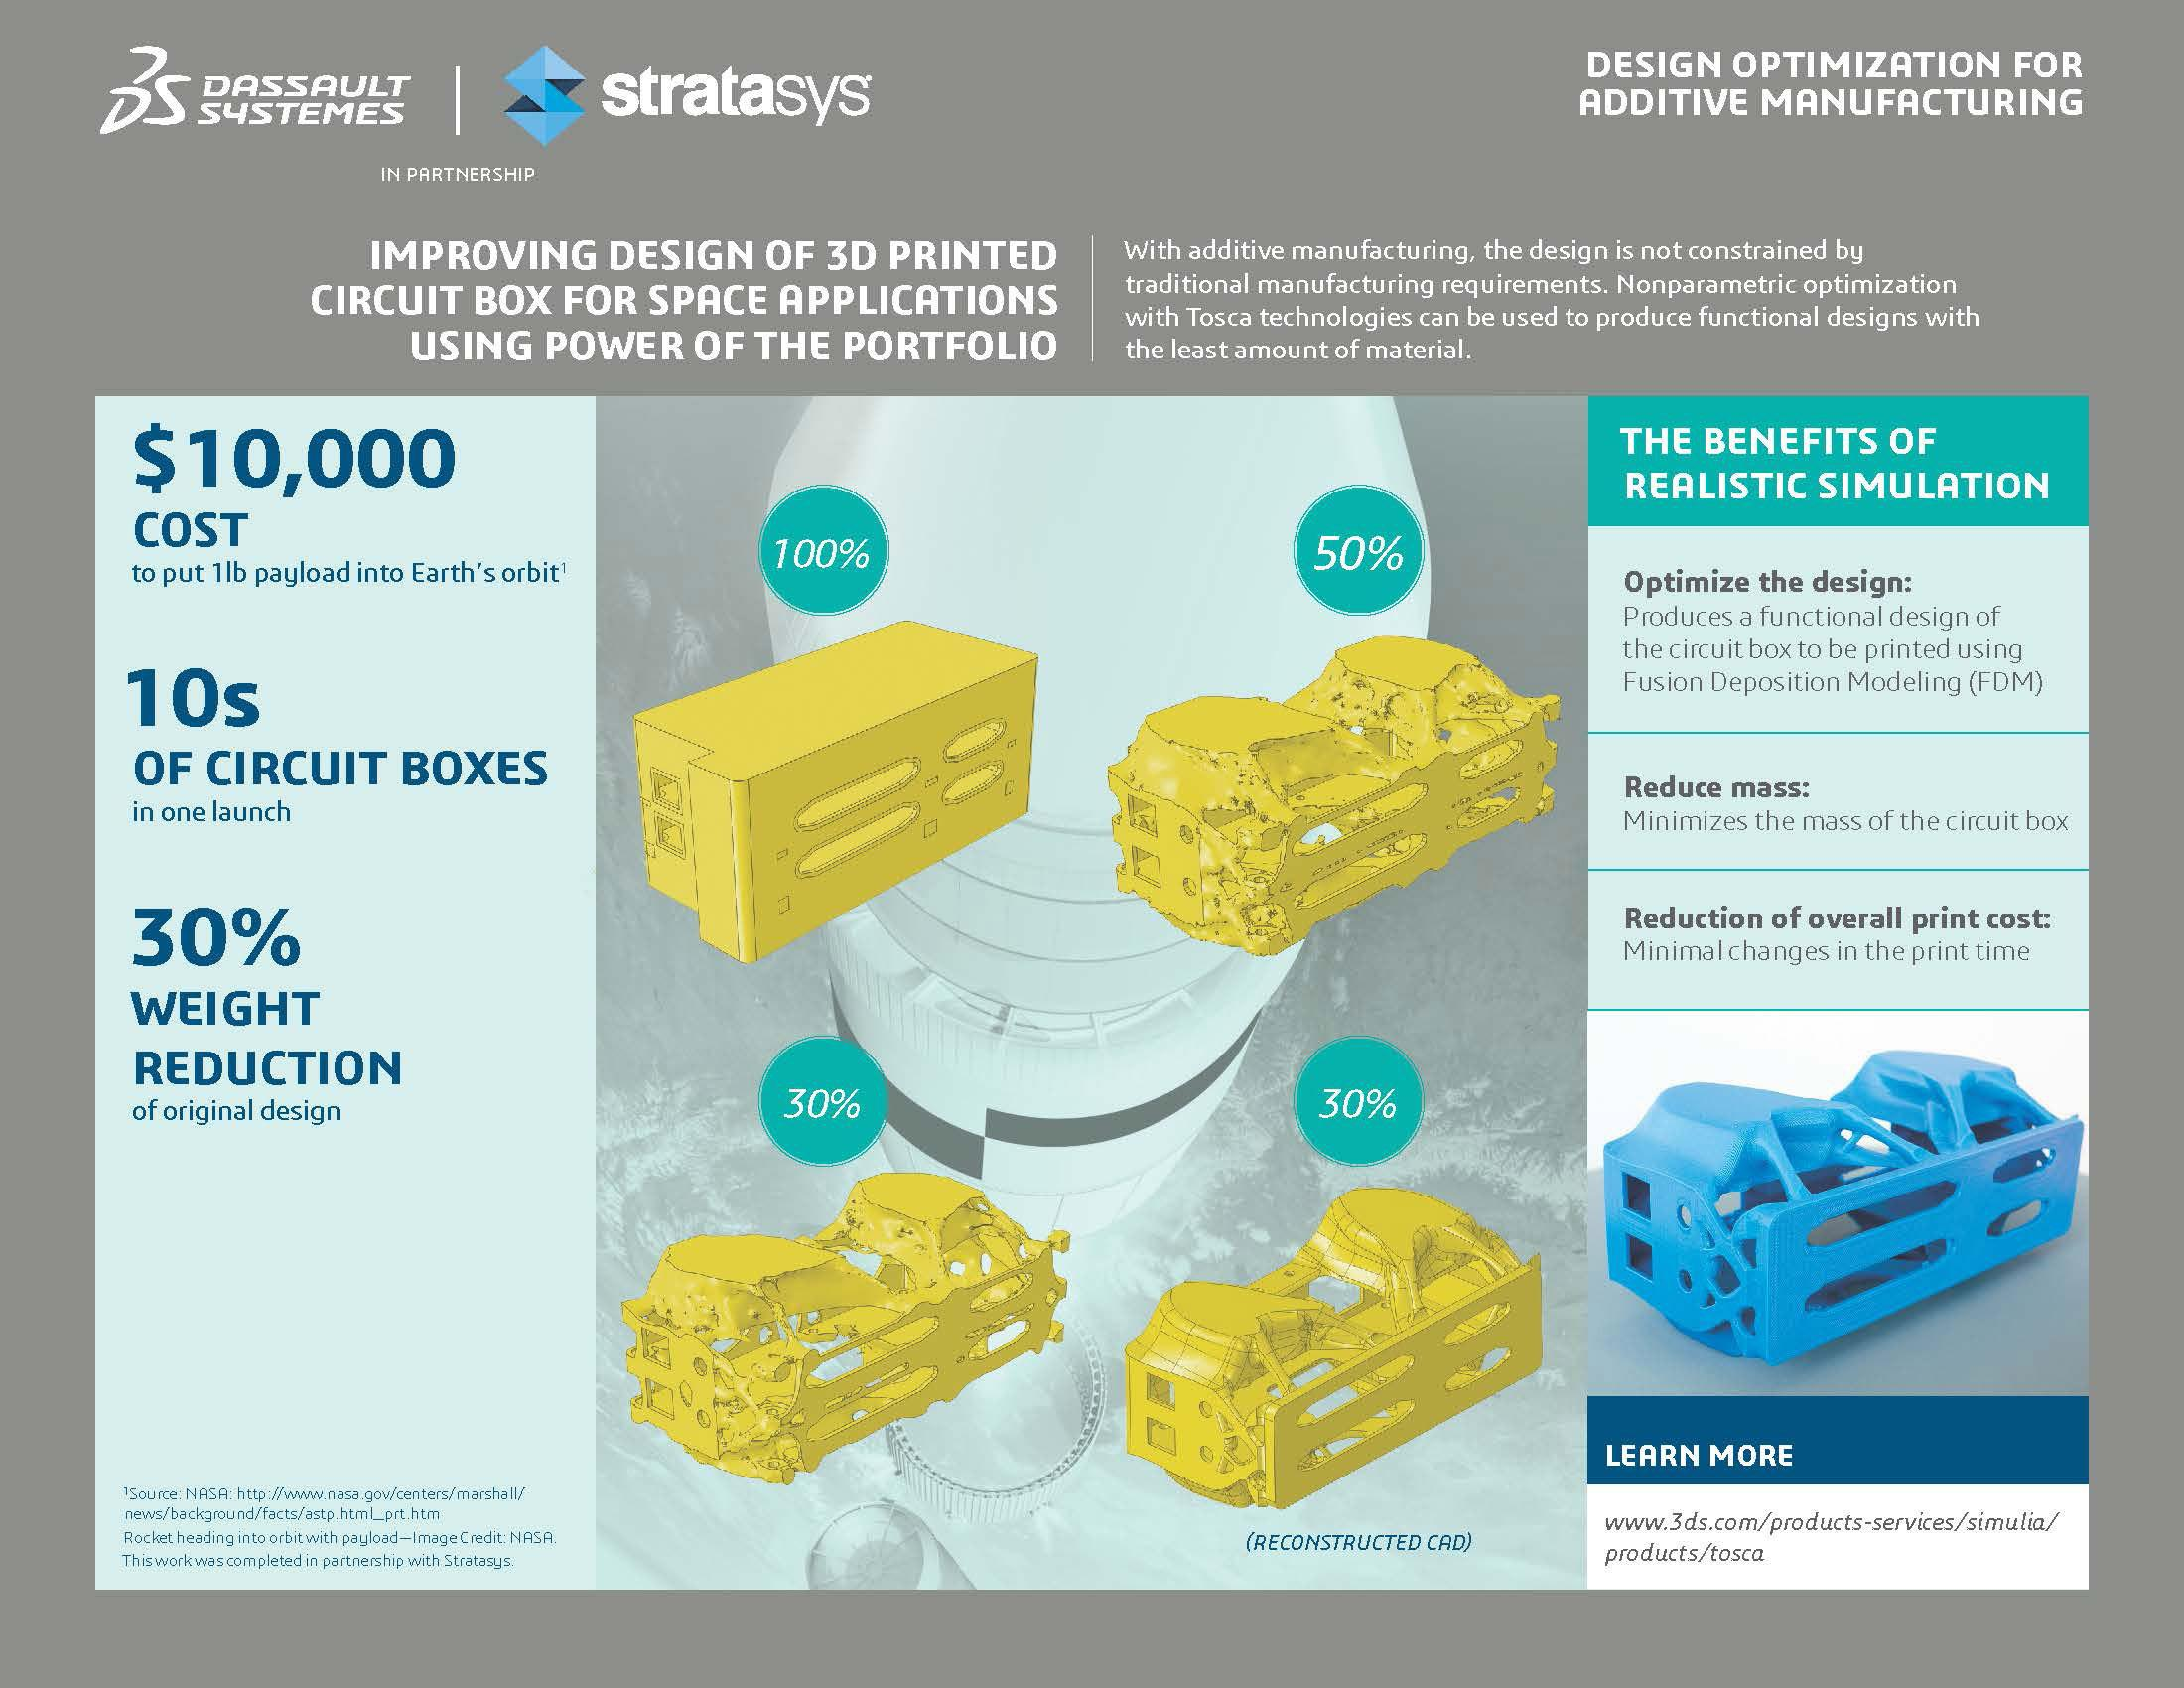 Stratasys And Dassault Systmes Announce New Additive Manufacturing Printed Circuit Board Infographic Design Optimization Using Simulia Applications For 3d Box